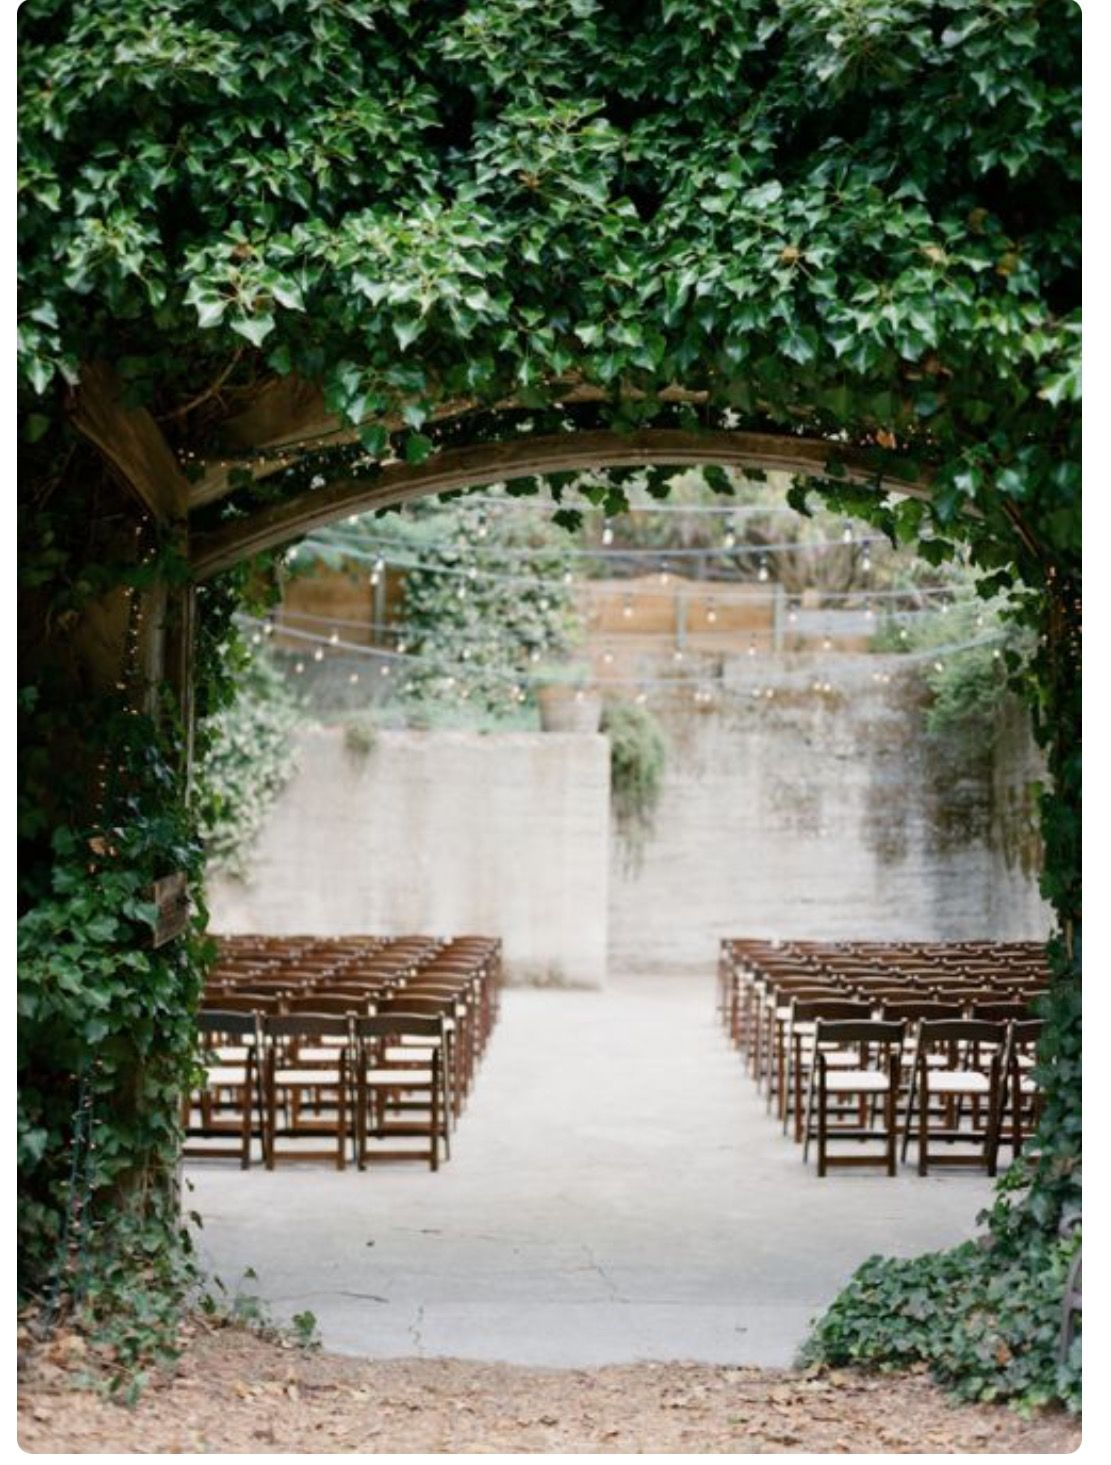 decorating ideas for outside wedding ceremony%0A    Shades of Greyed Jade Wedding Ideas  wedding ceremony idea  Venue  Sand  Rock Farm Bed and Breakfast via Once Wed